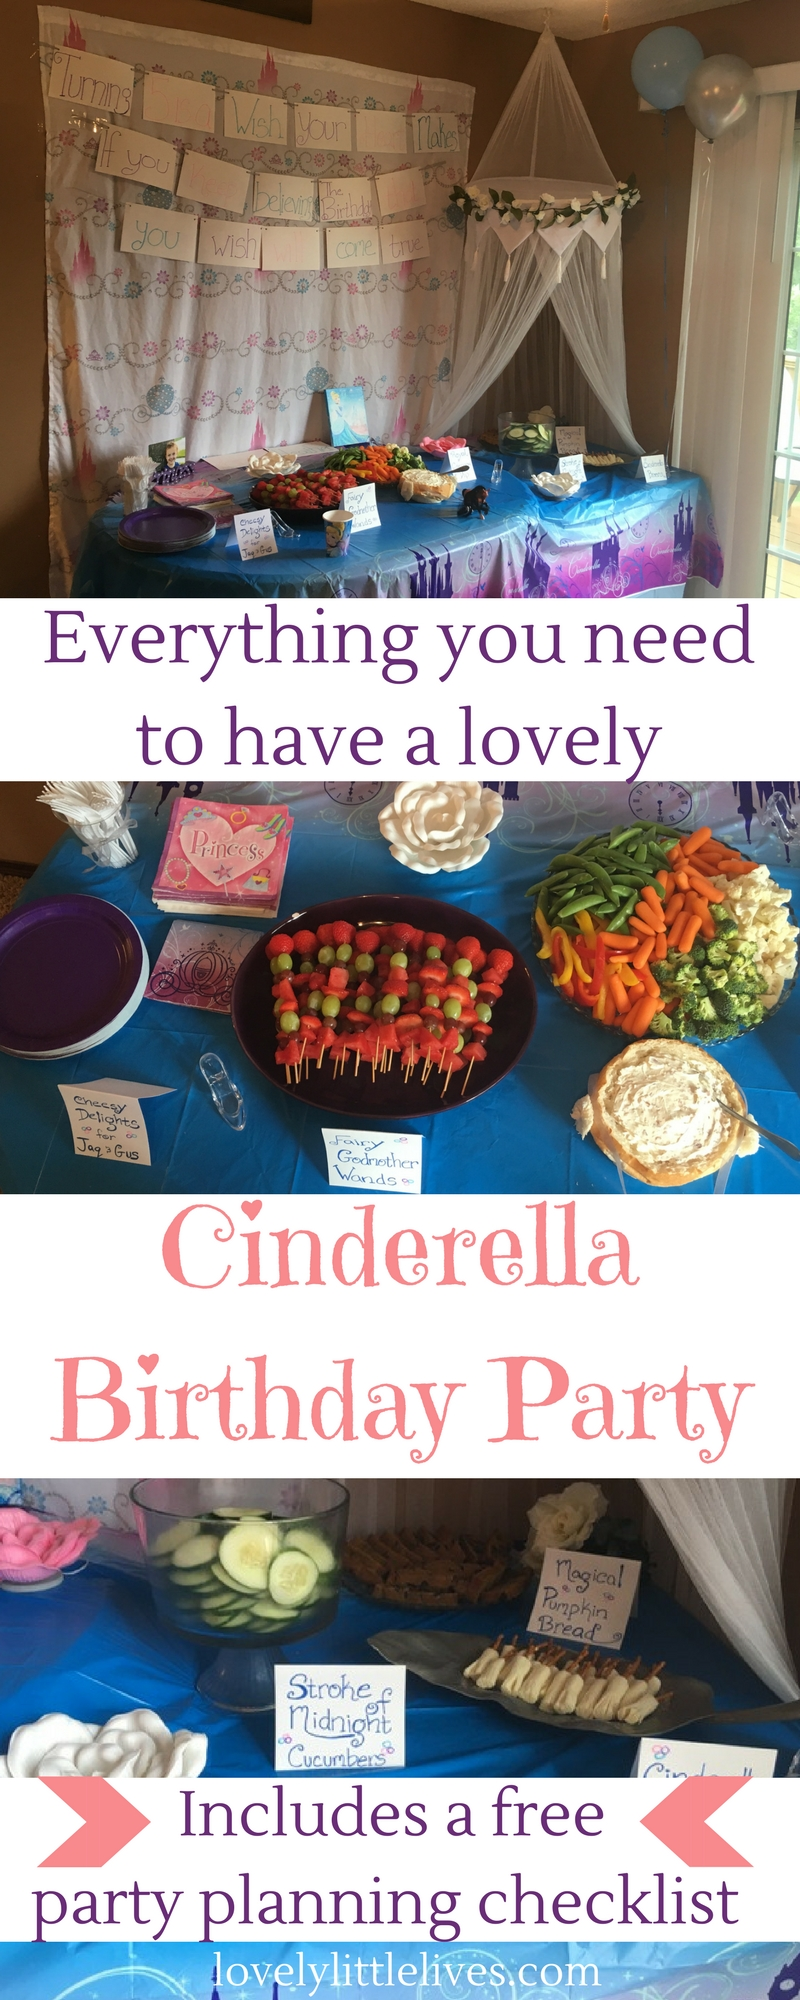 Everything you need to have a lovely Cinderella Birthday Party